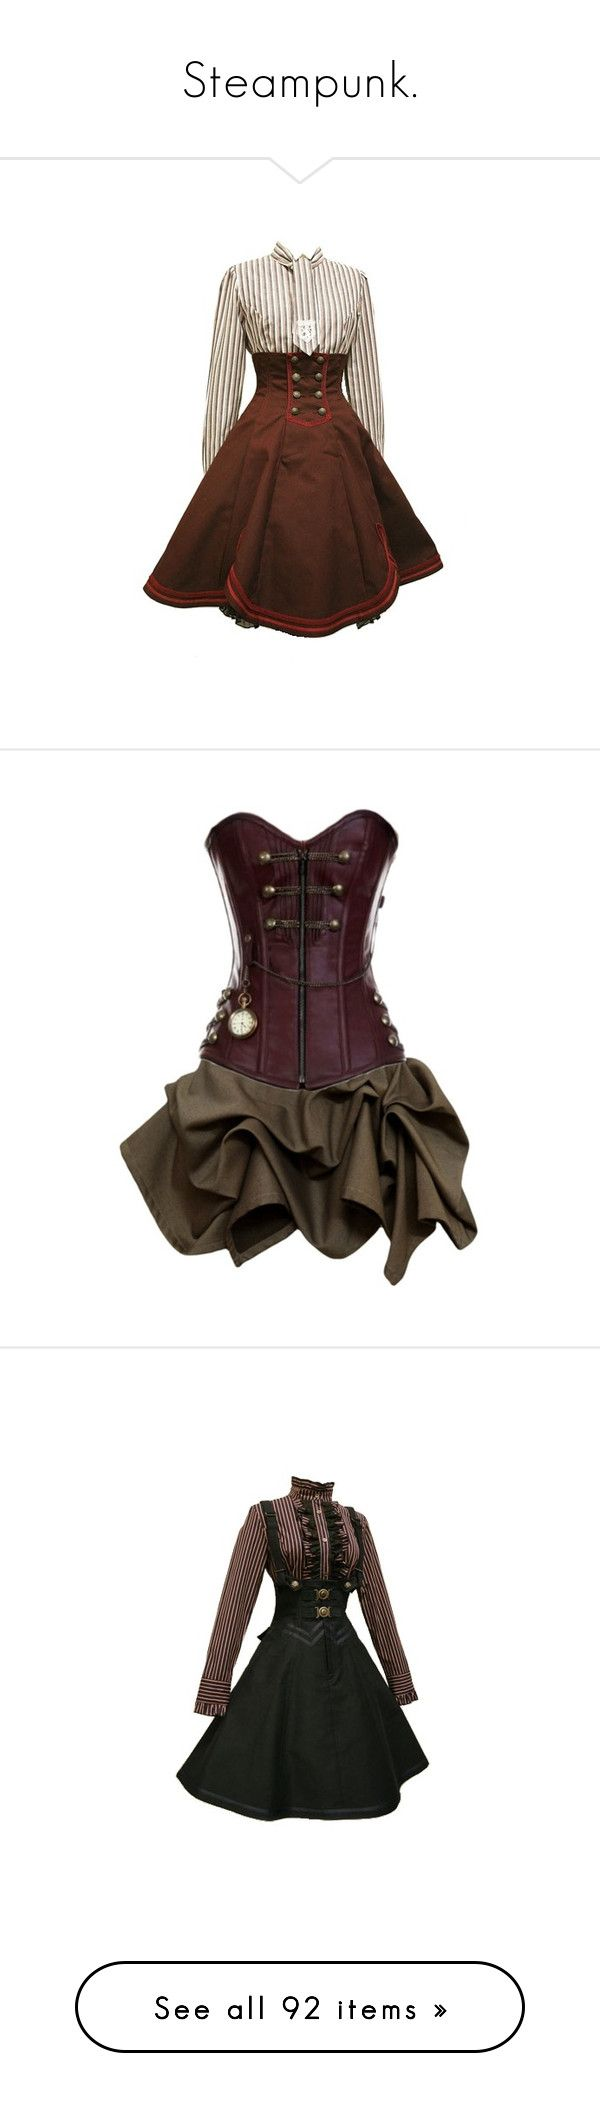 """Steampunk."" by waywardandwindy ❤ liked on Polyvore featuring fantasy, victorian, steampunk, fashionset, dresses, costume, short dresses, vestidos, mini dress and steampunk dress"